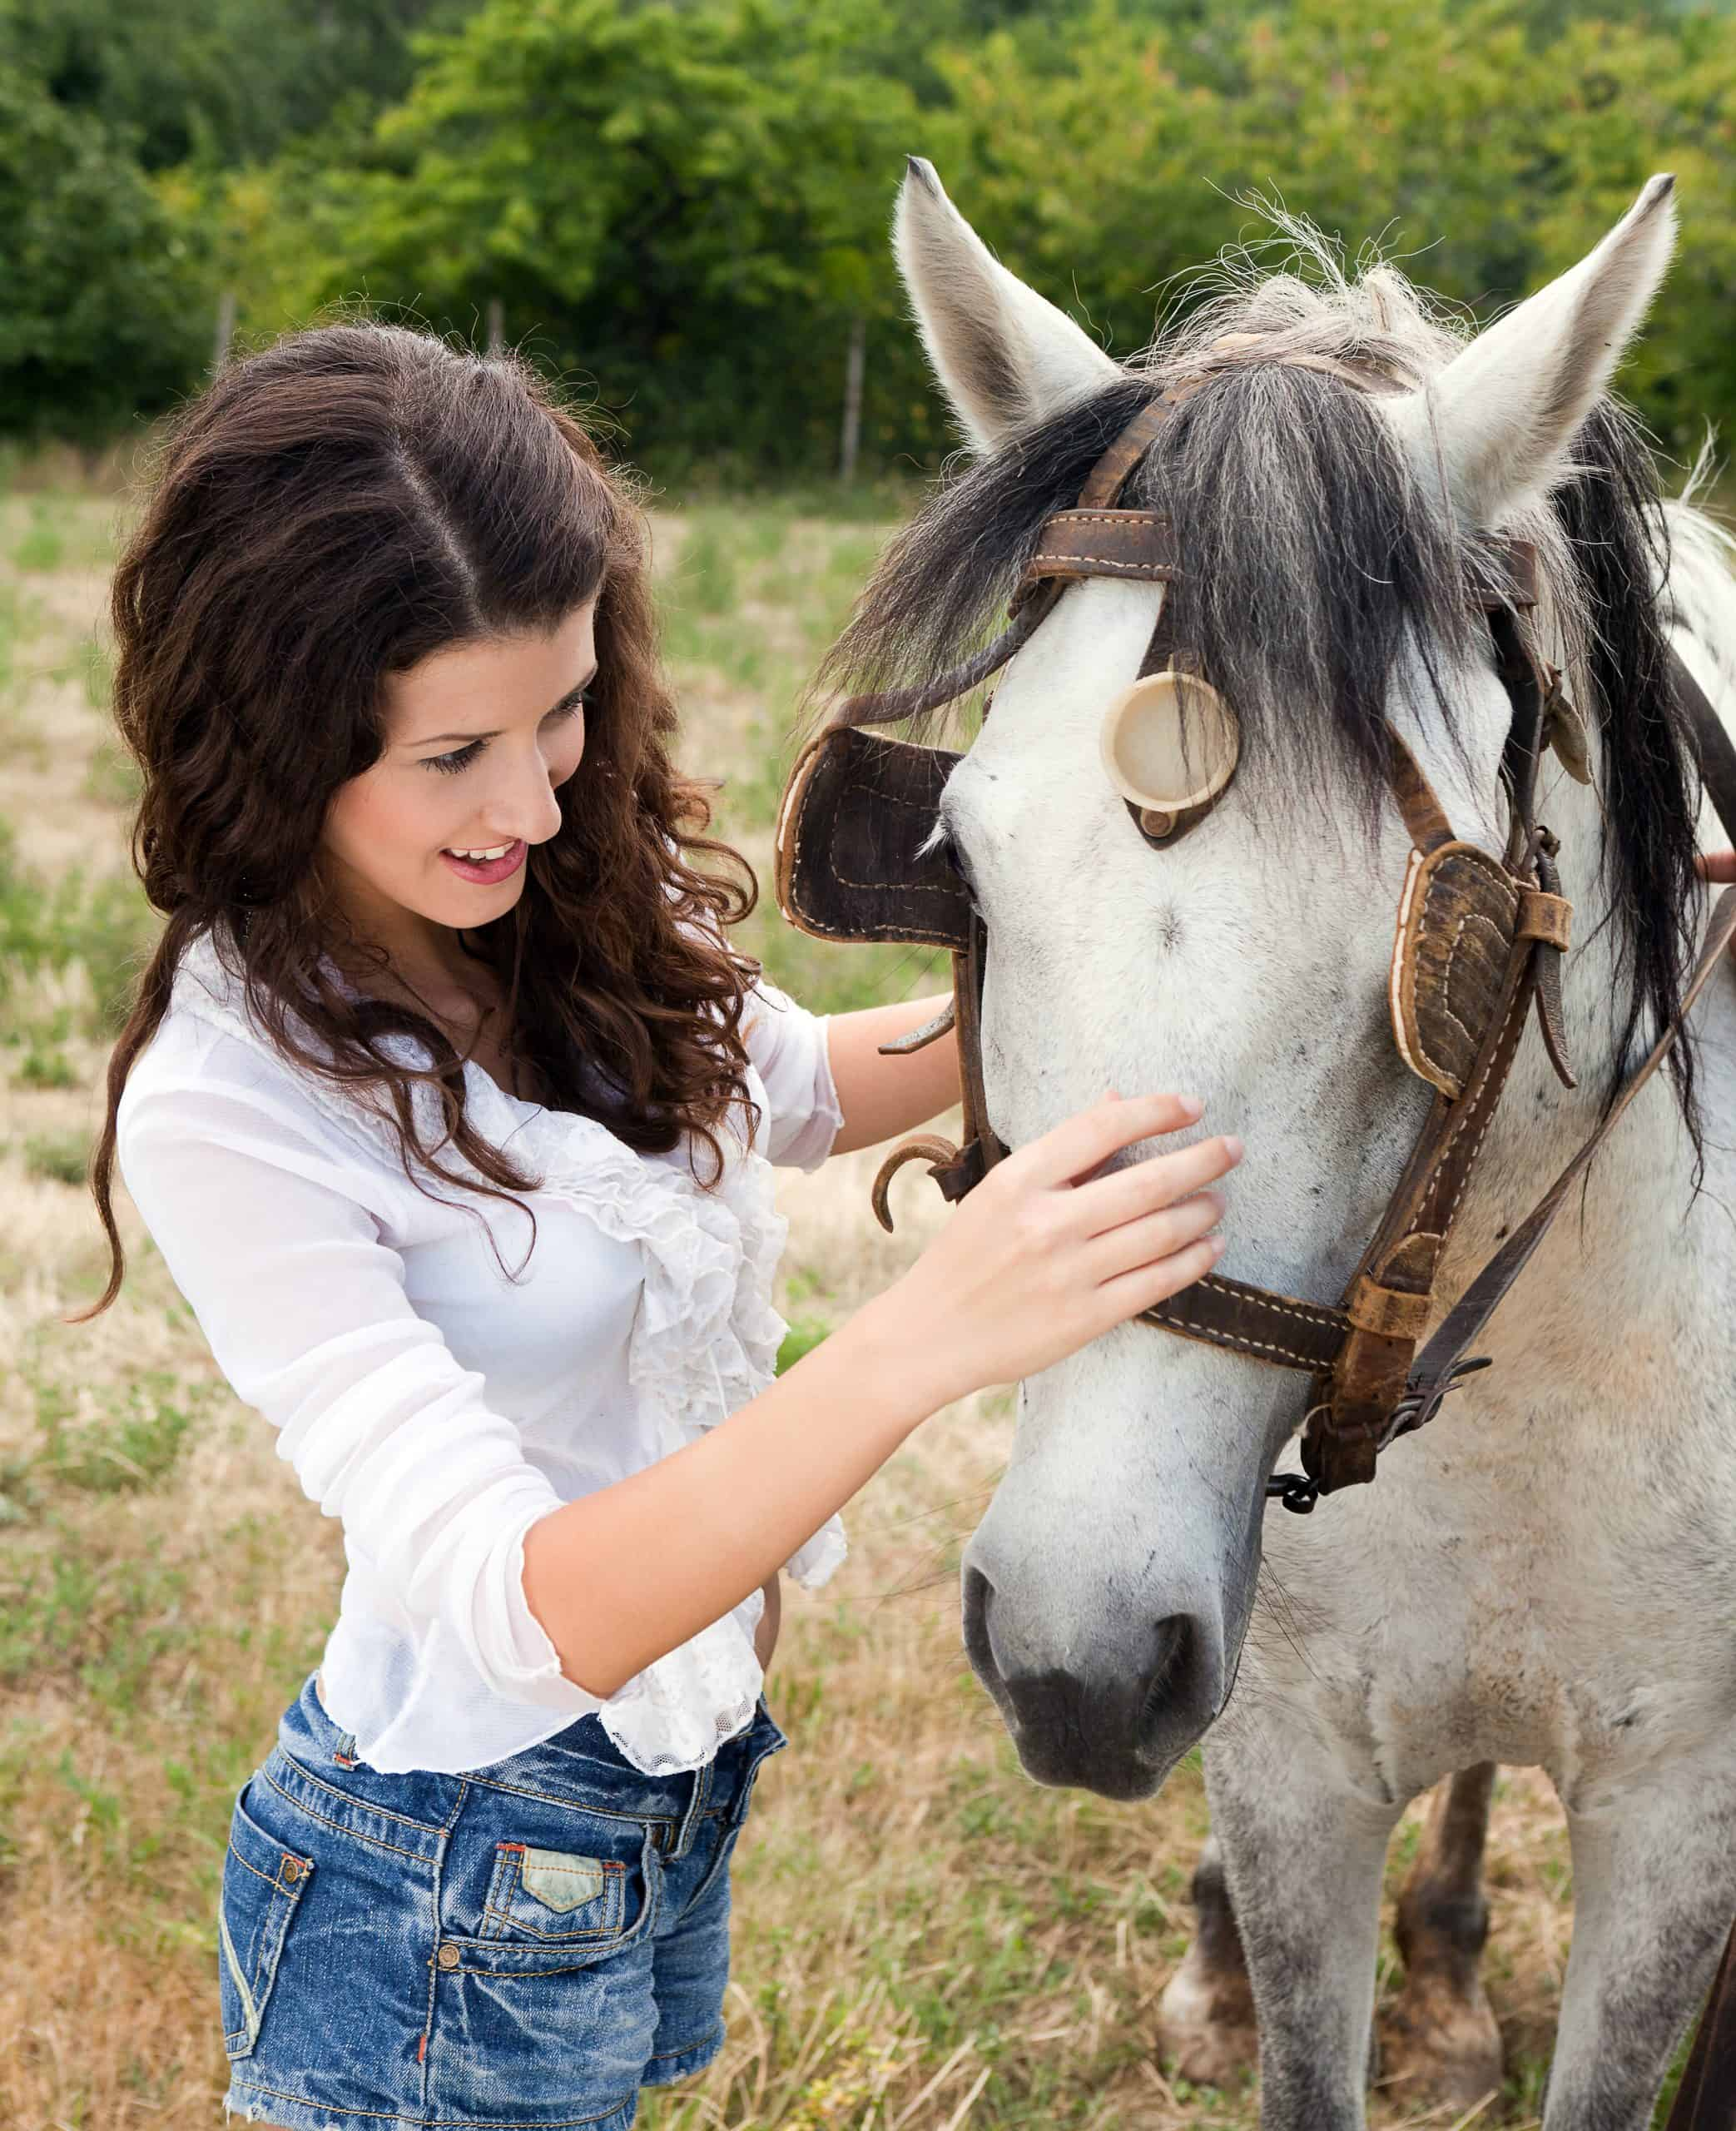 Smiling woman meeting a farm horse in a meadow